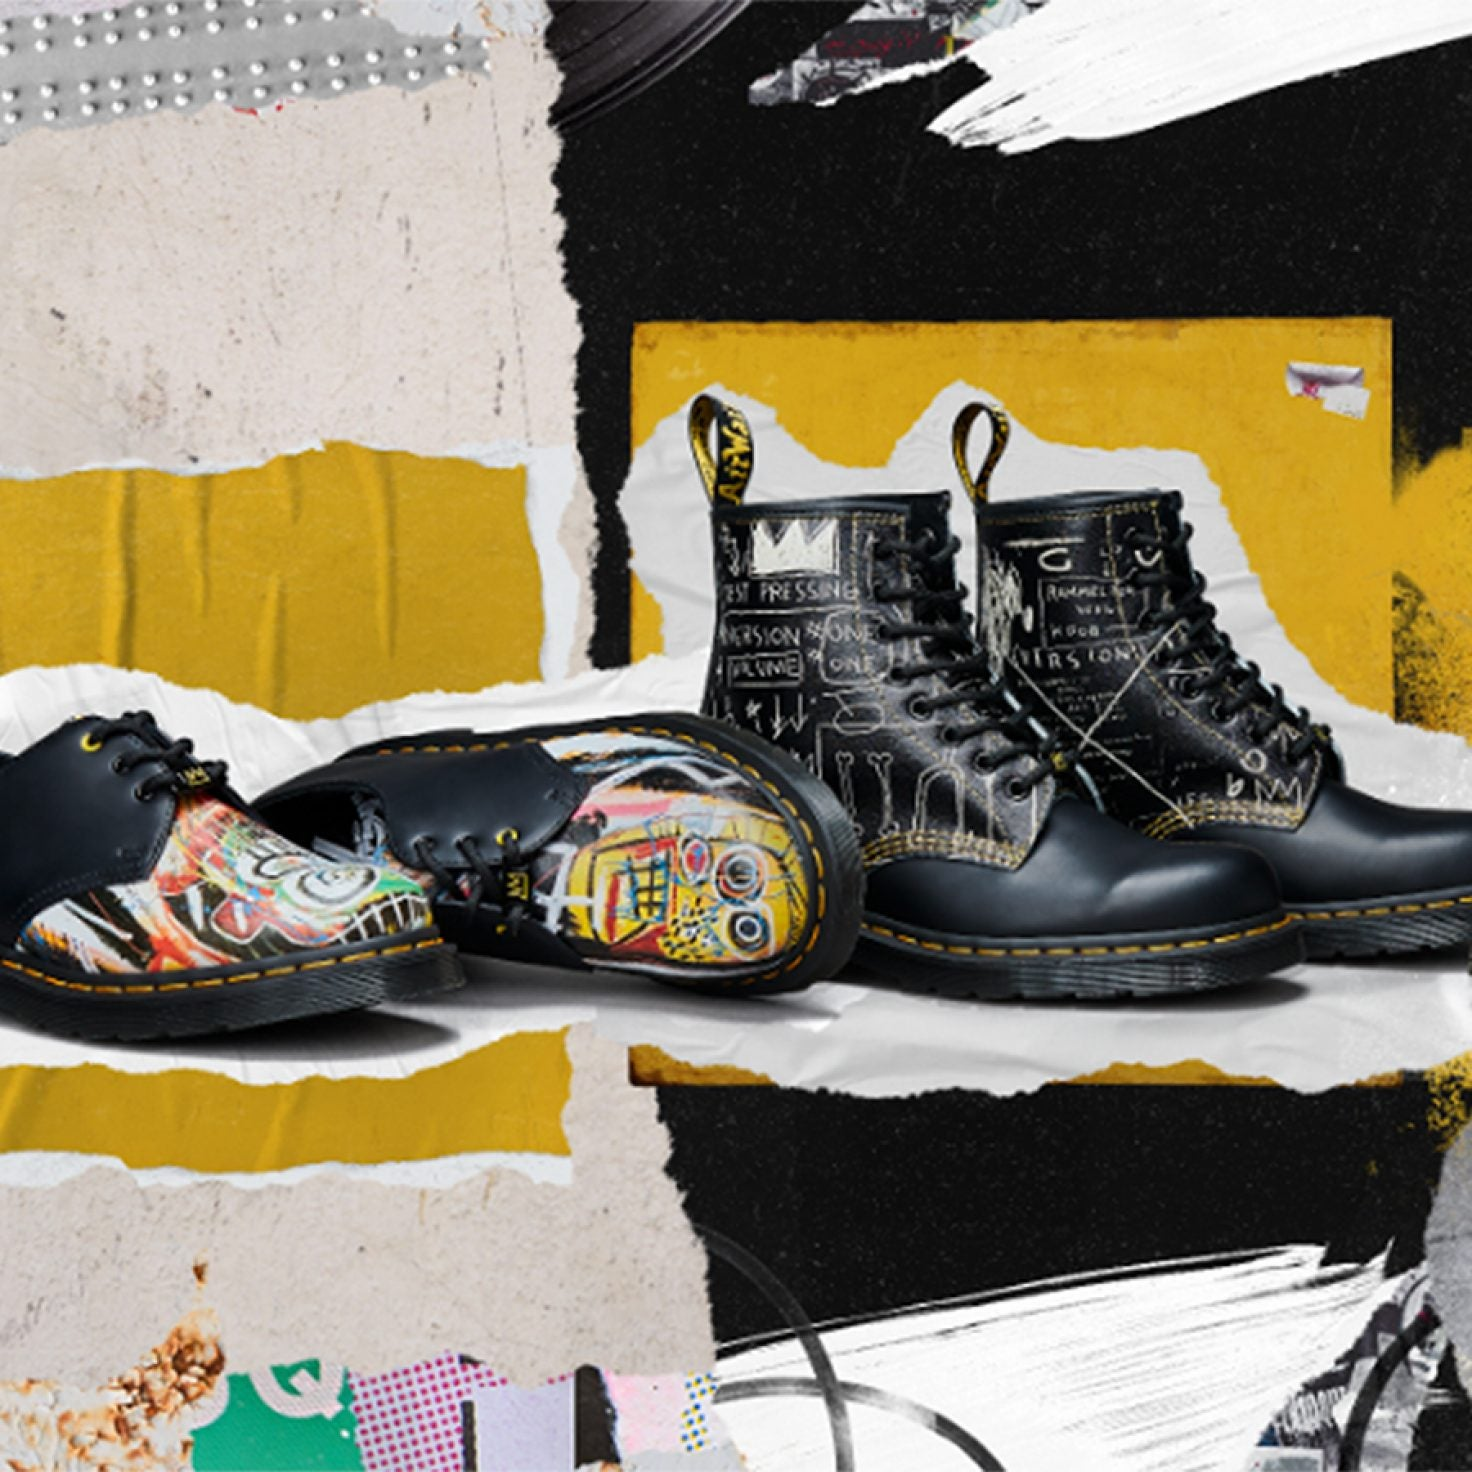 Dr. Martens Launches Capsule Collection With Jean-Michael Basquiat